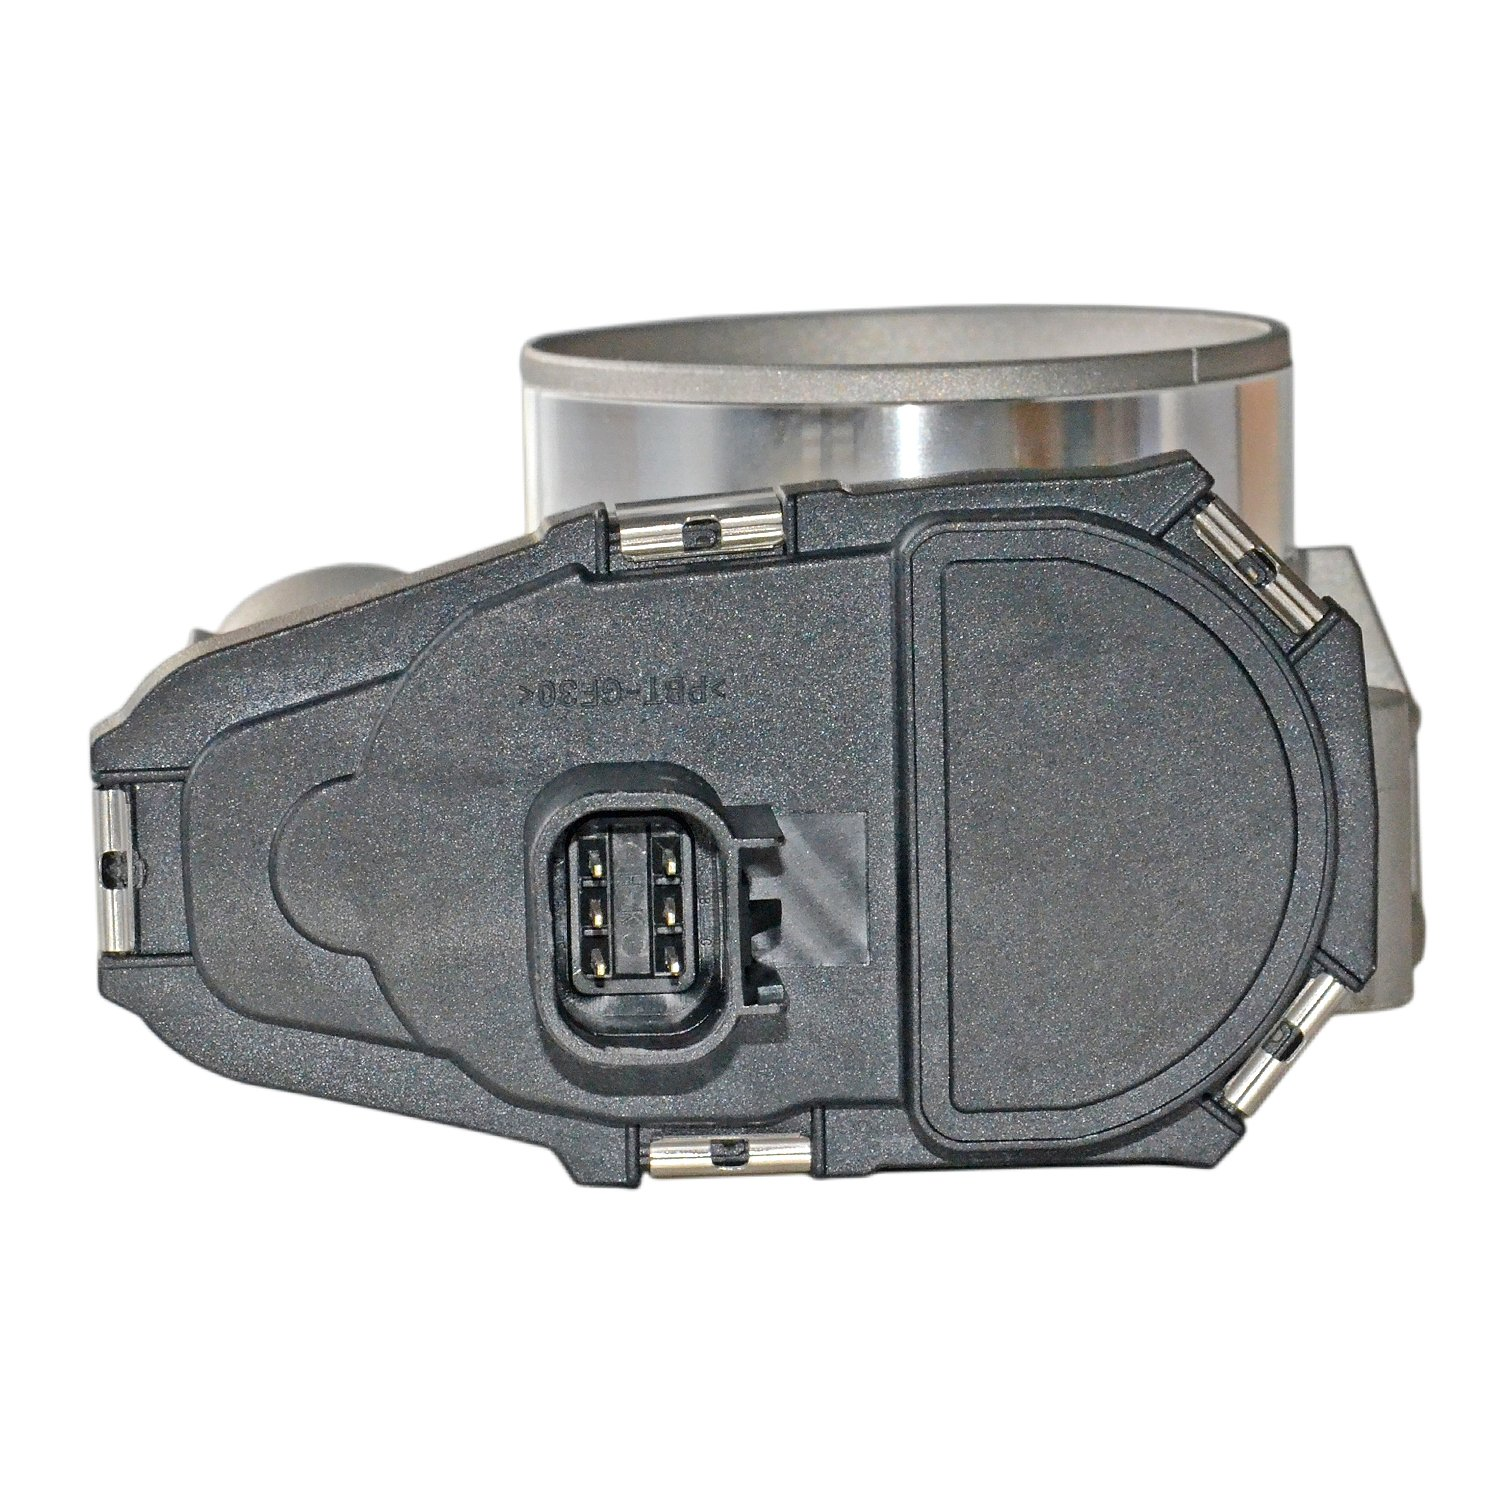 Throttle Body Fit For Chevy Buick GMC Saturn Pontiac 3 6L V6